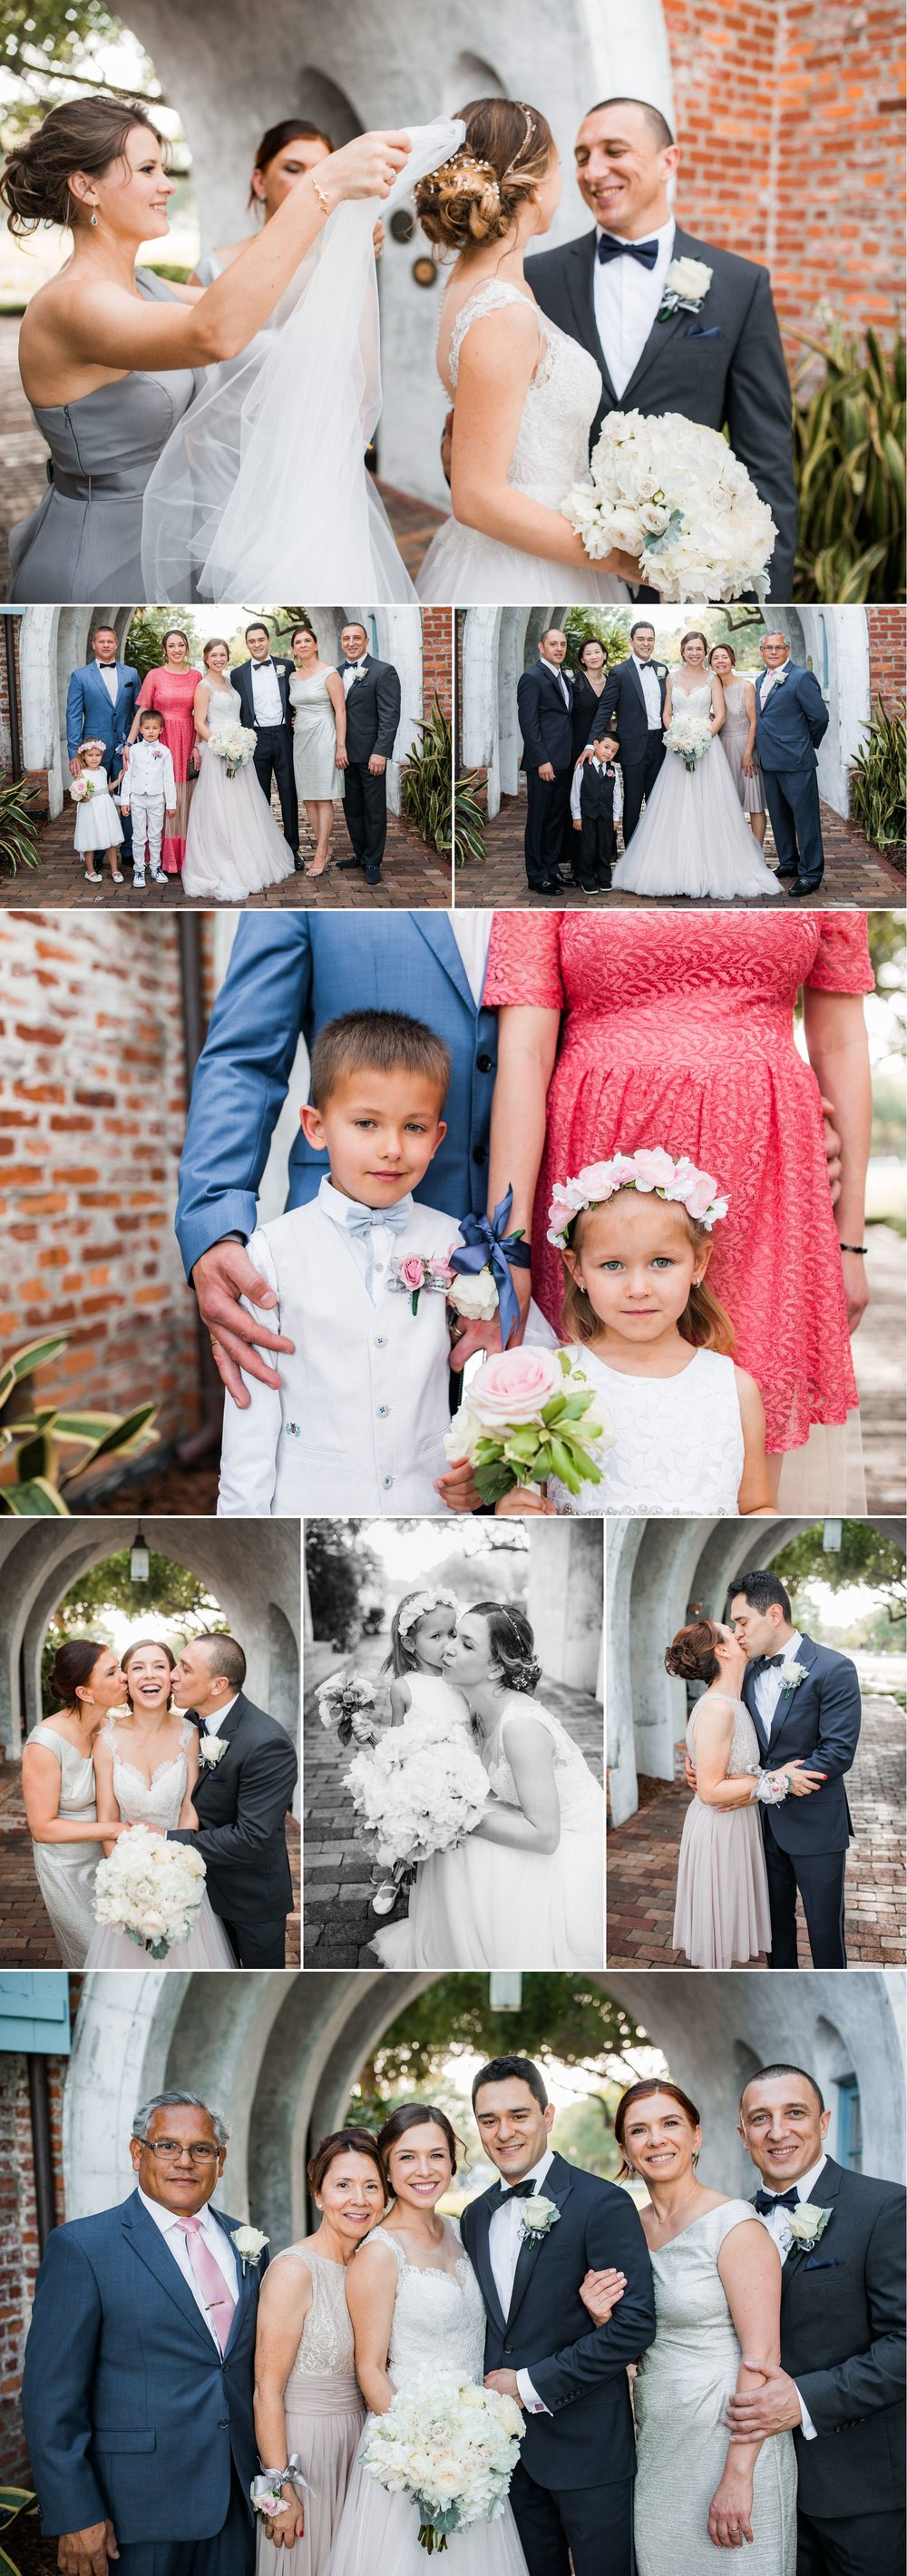 Boho Chic Blush Gold Wedding at Casa Feliz Winter Park -Andres + Elya 174.jpg